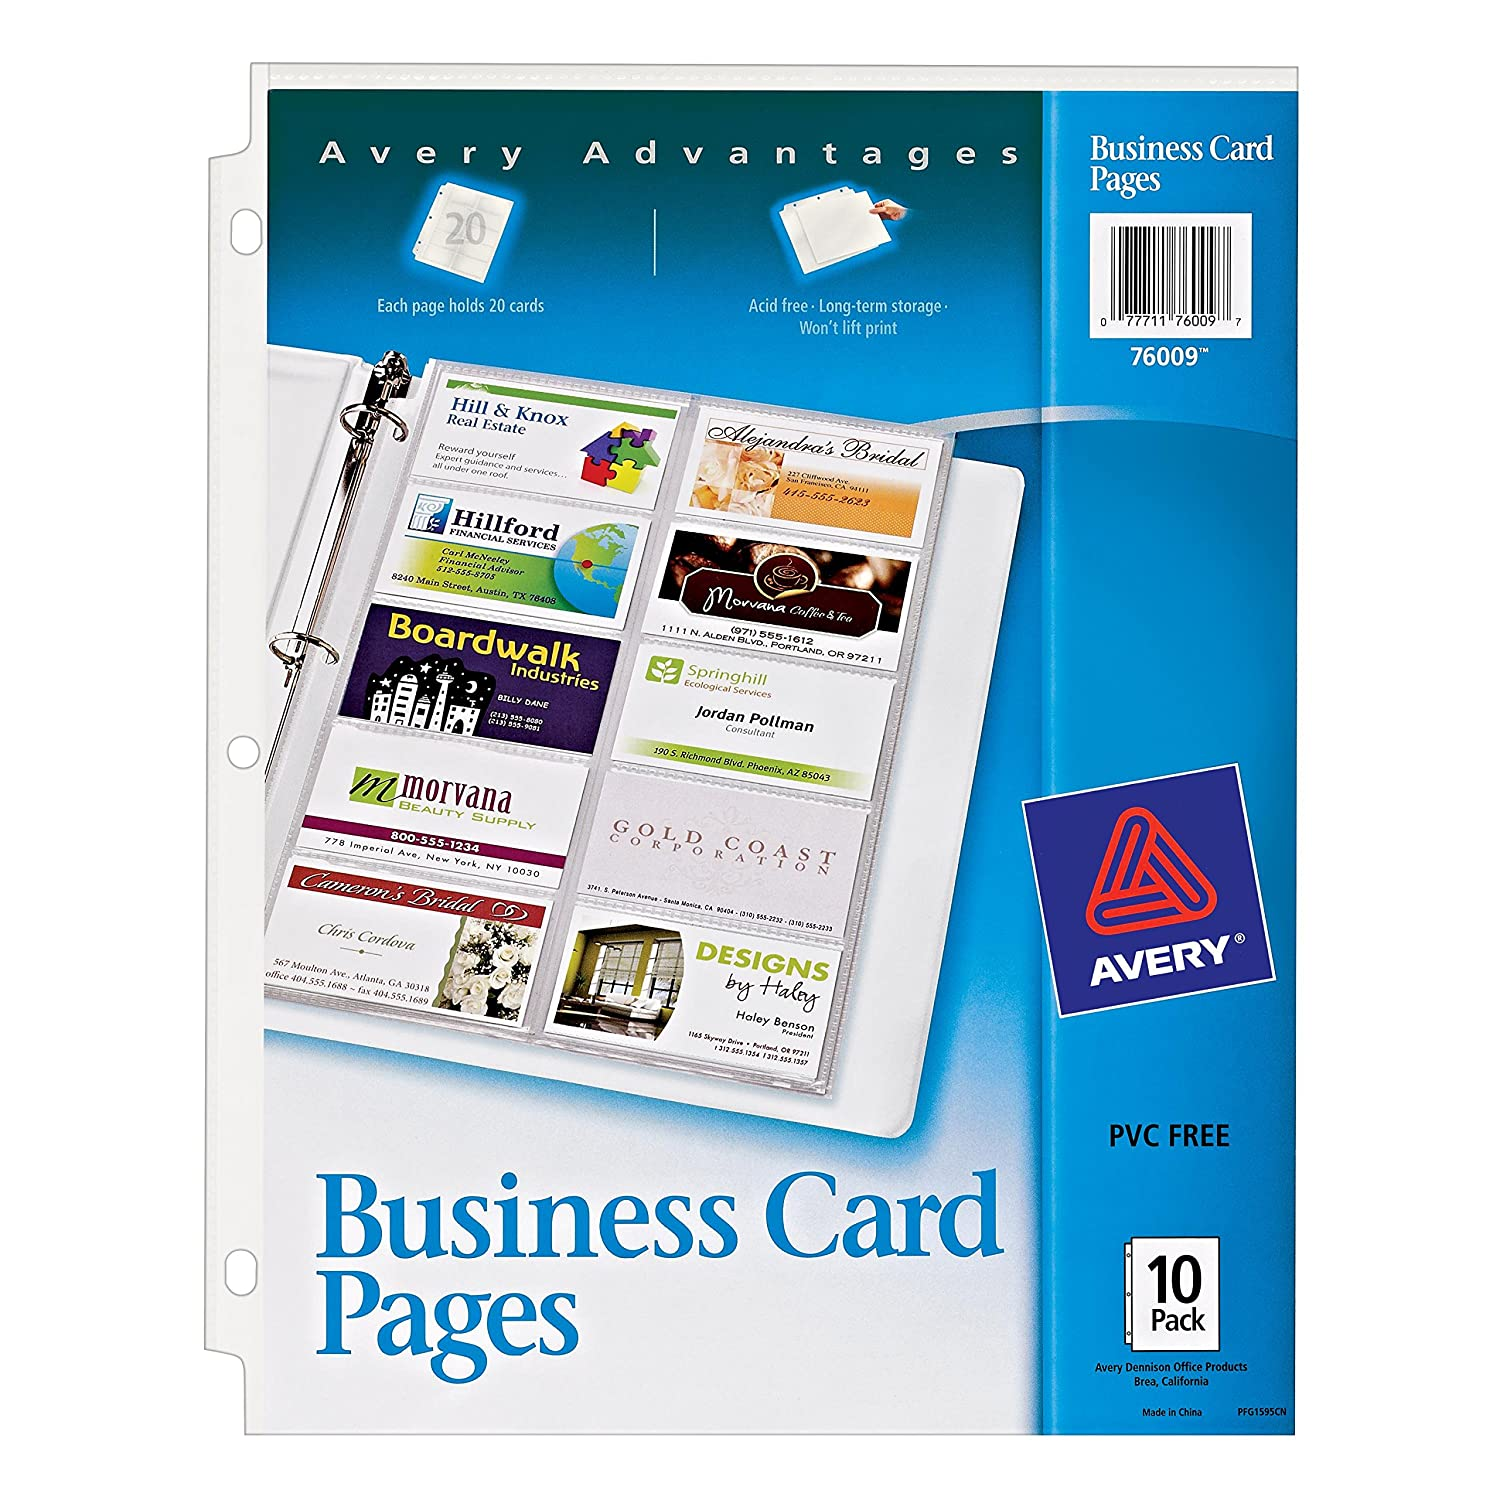 Amazon.com : Avery Business Card Pages, Pack of 10 (76009 ...